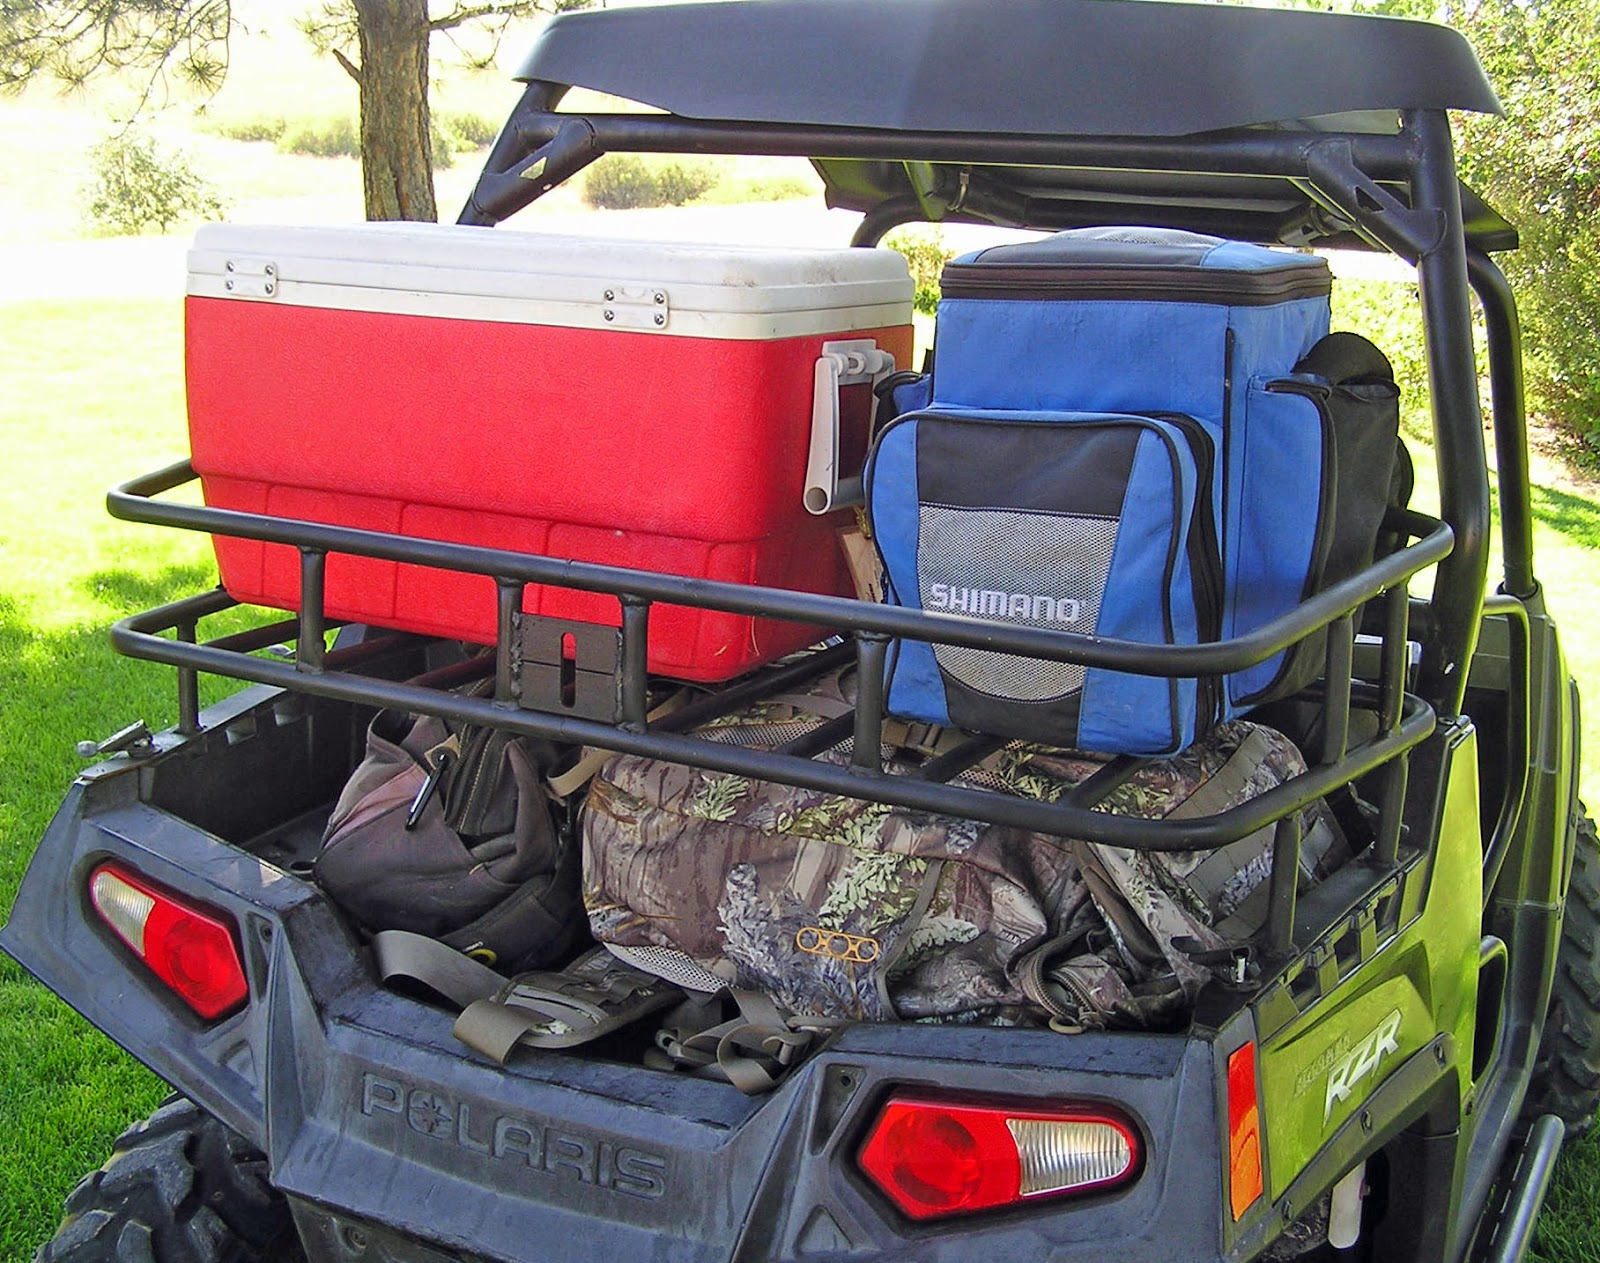 Polaris Ranger Rzr 800 Cargo Storage Mgb Gt Wiring Diagram Hornet Outdoors Accessories Can Double The